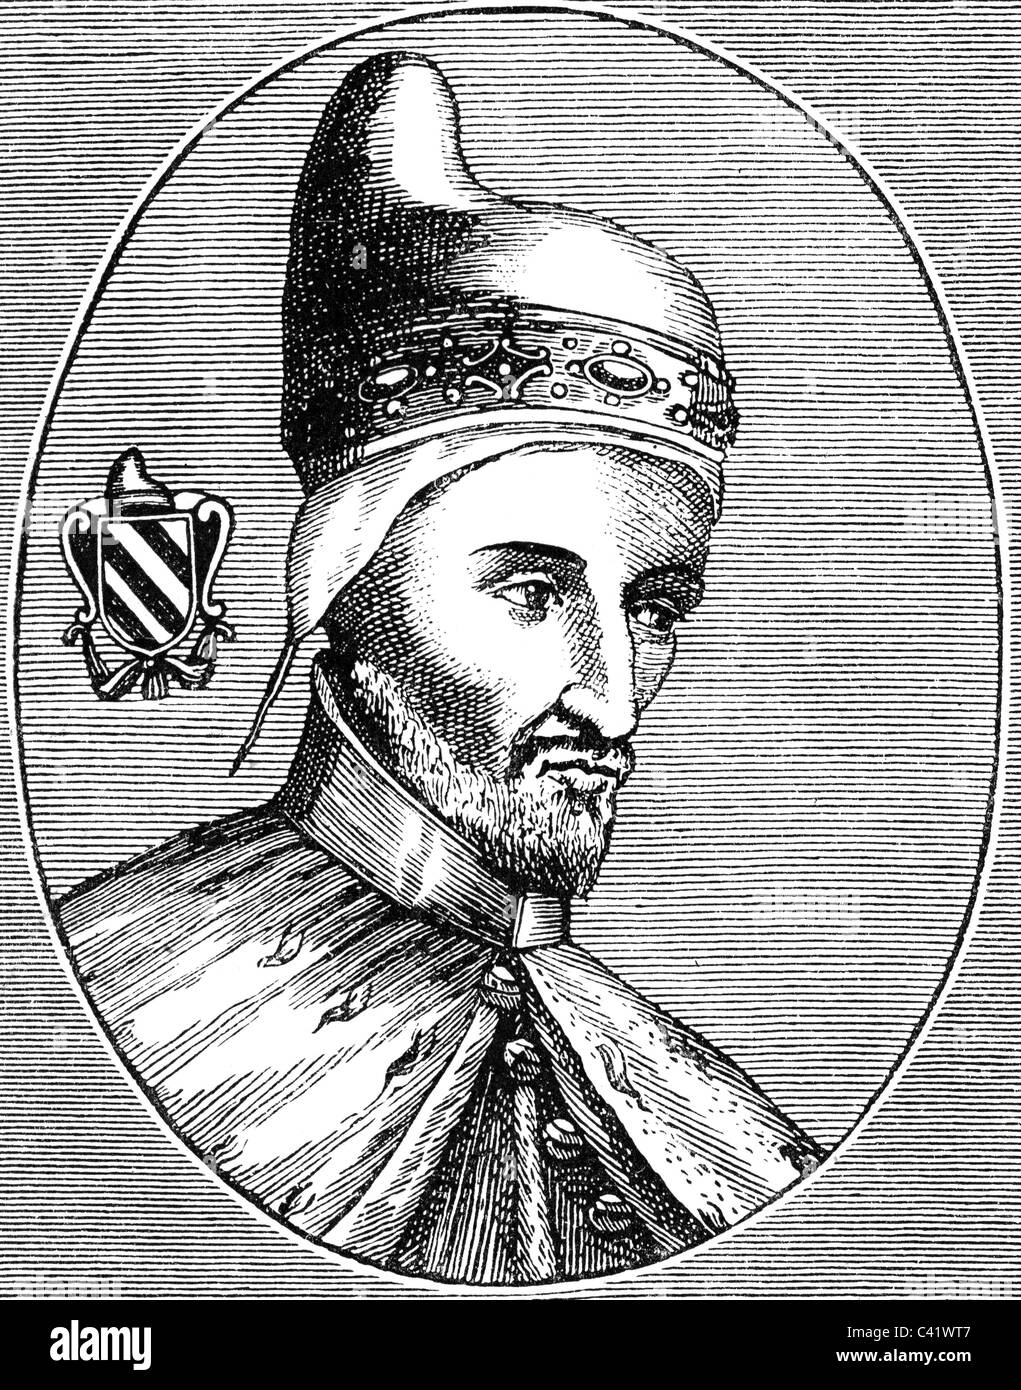 Contarini, Andrea, 1300/1302 - 5.6.1382, Doge of Venice 1368 - 1382, portrait, wood engraving, 19th century, Additional - Stock Image